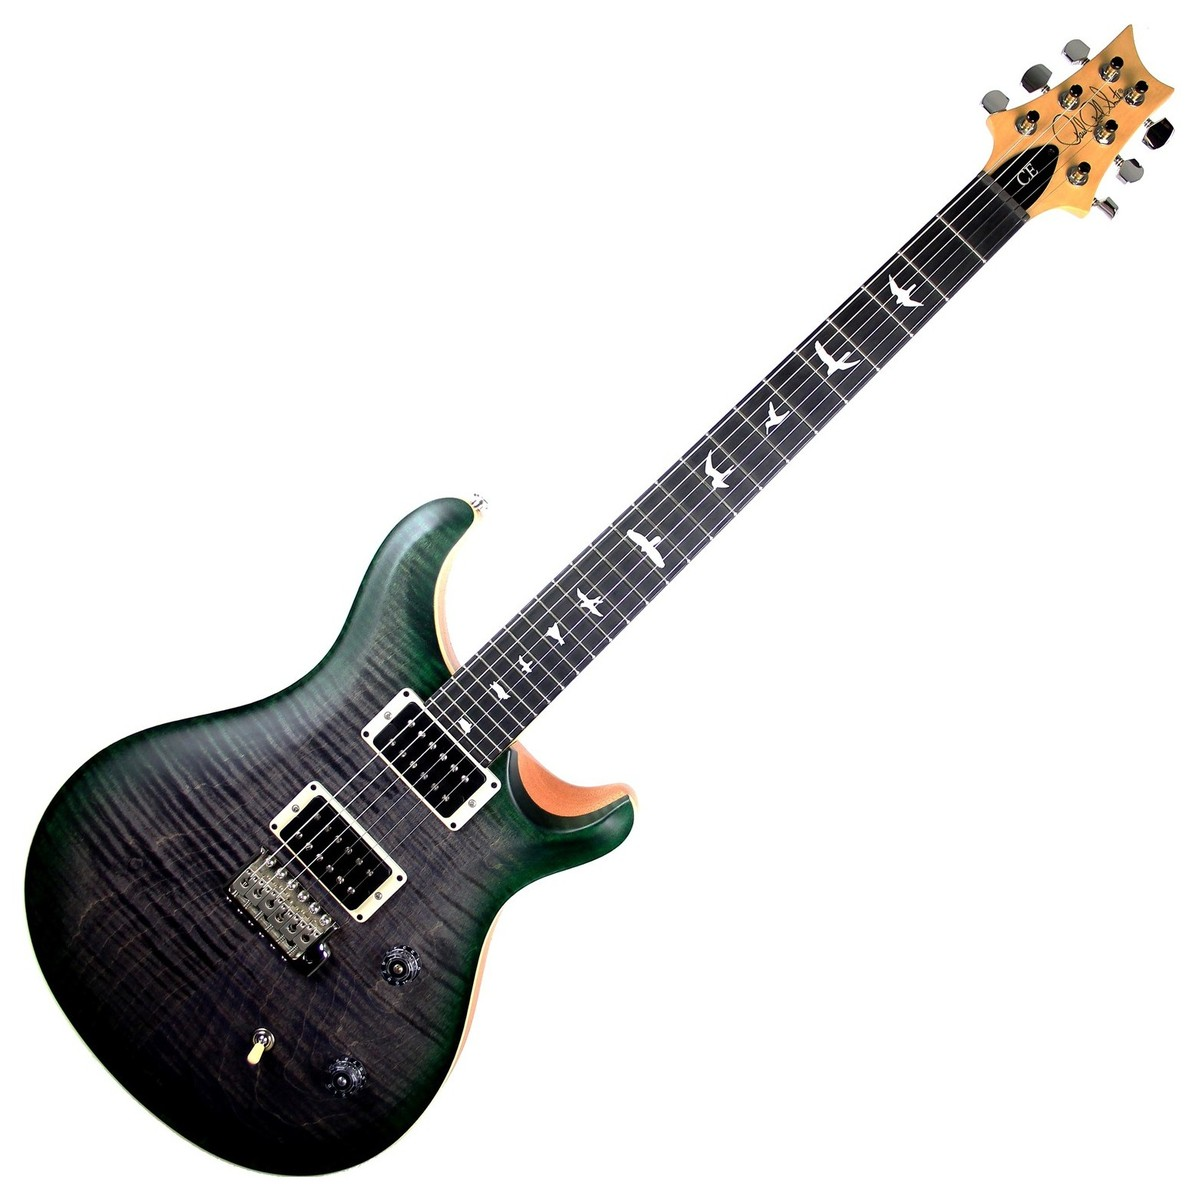 Prs Ce 24 Satin Ltd Electric Guitar Faded Grey Black Green Burst